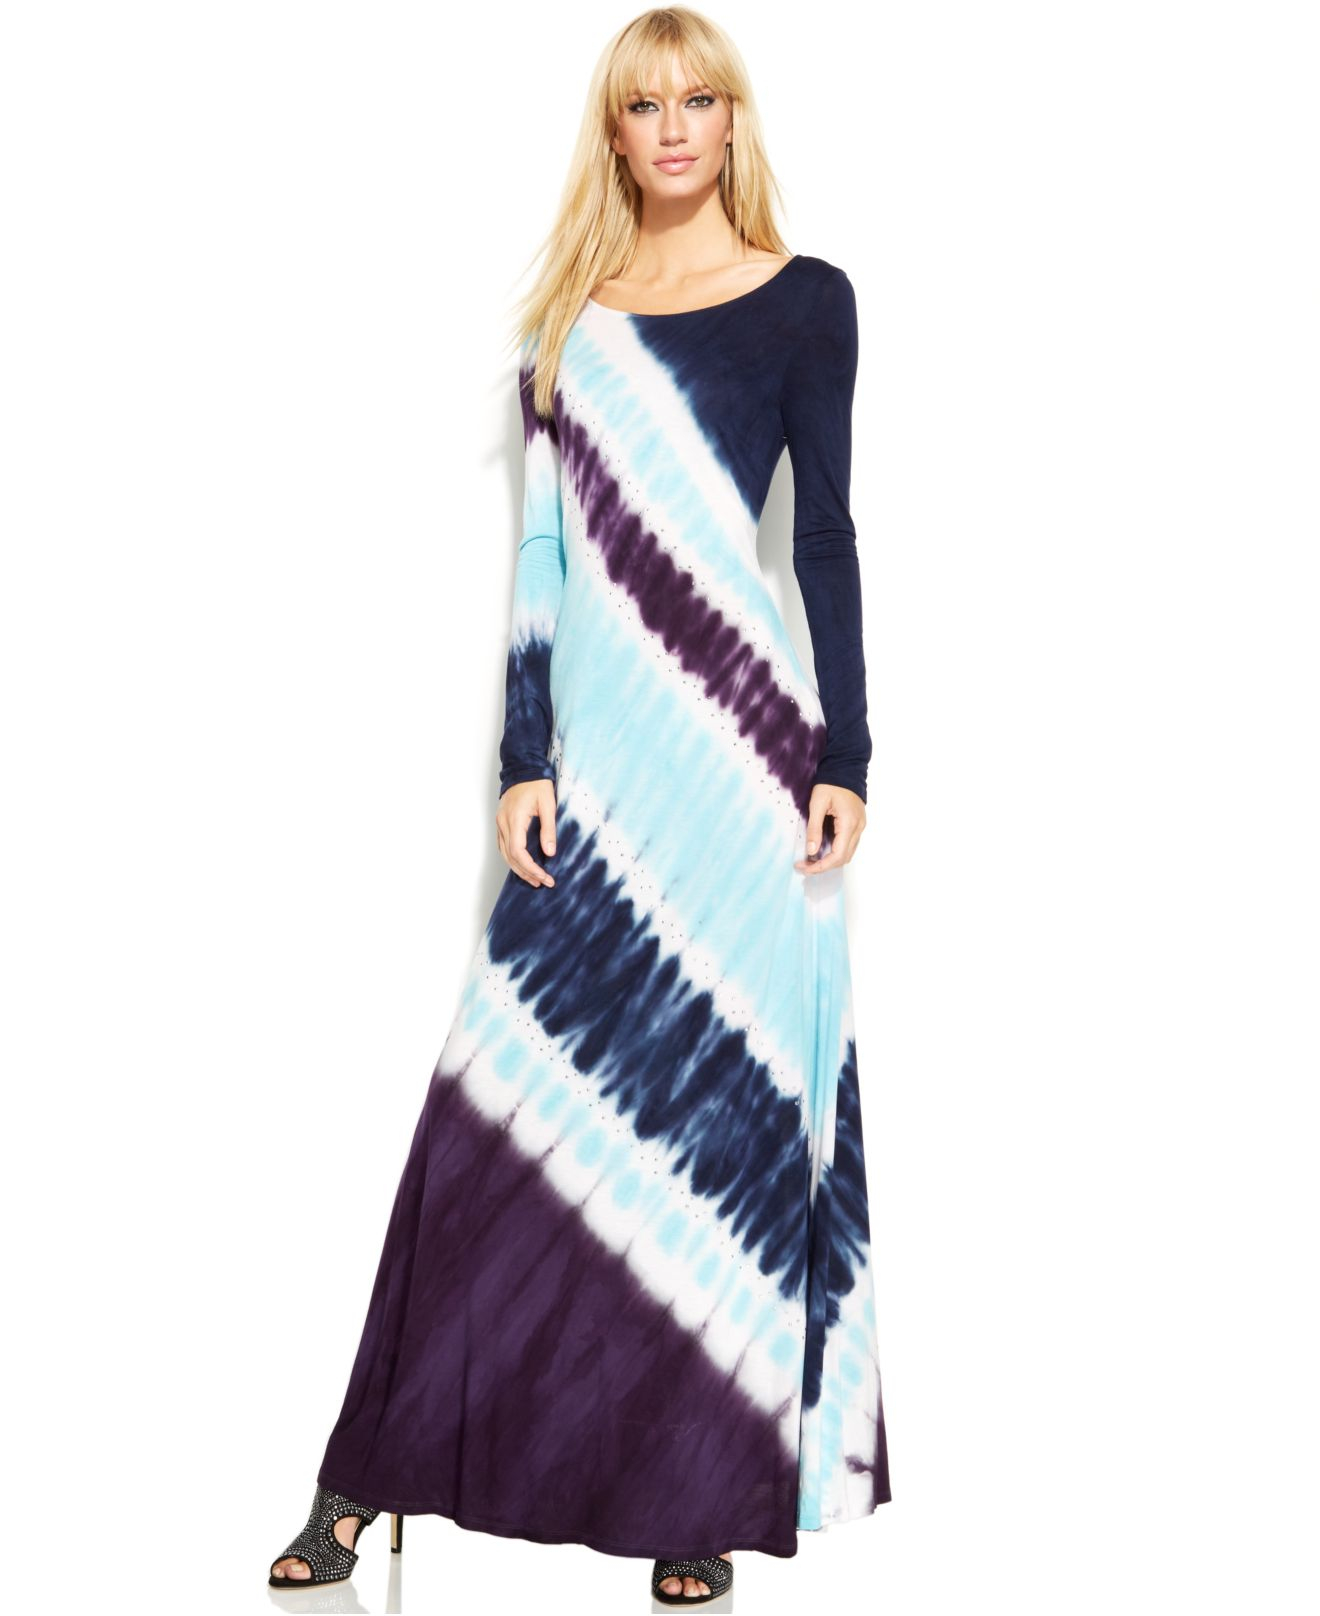 Inc international concepts Long-Sleeve Tie-Dye Maxi Dress | Lyst